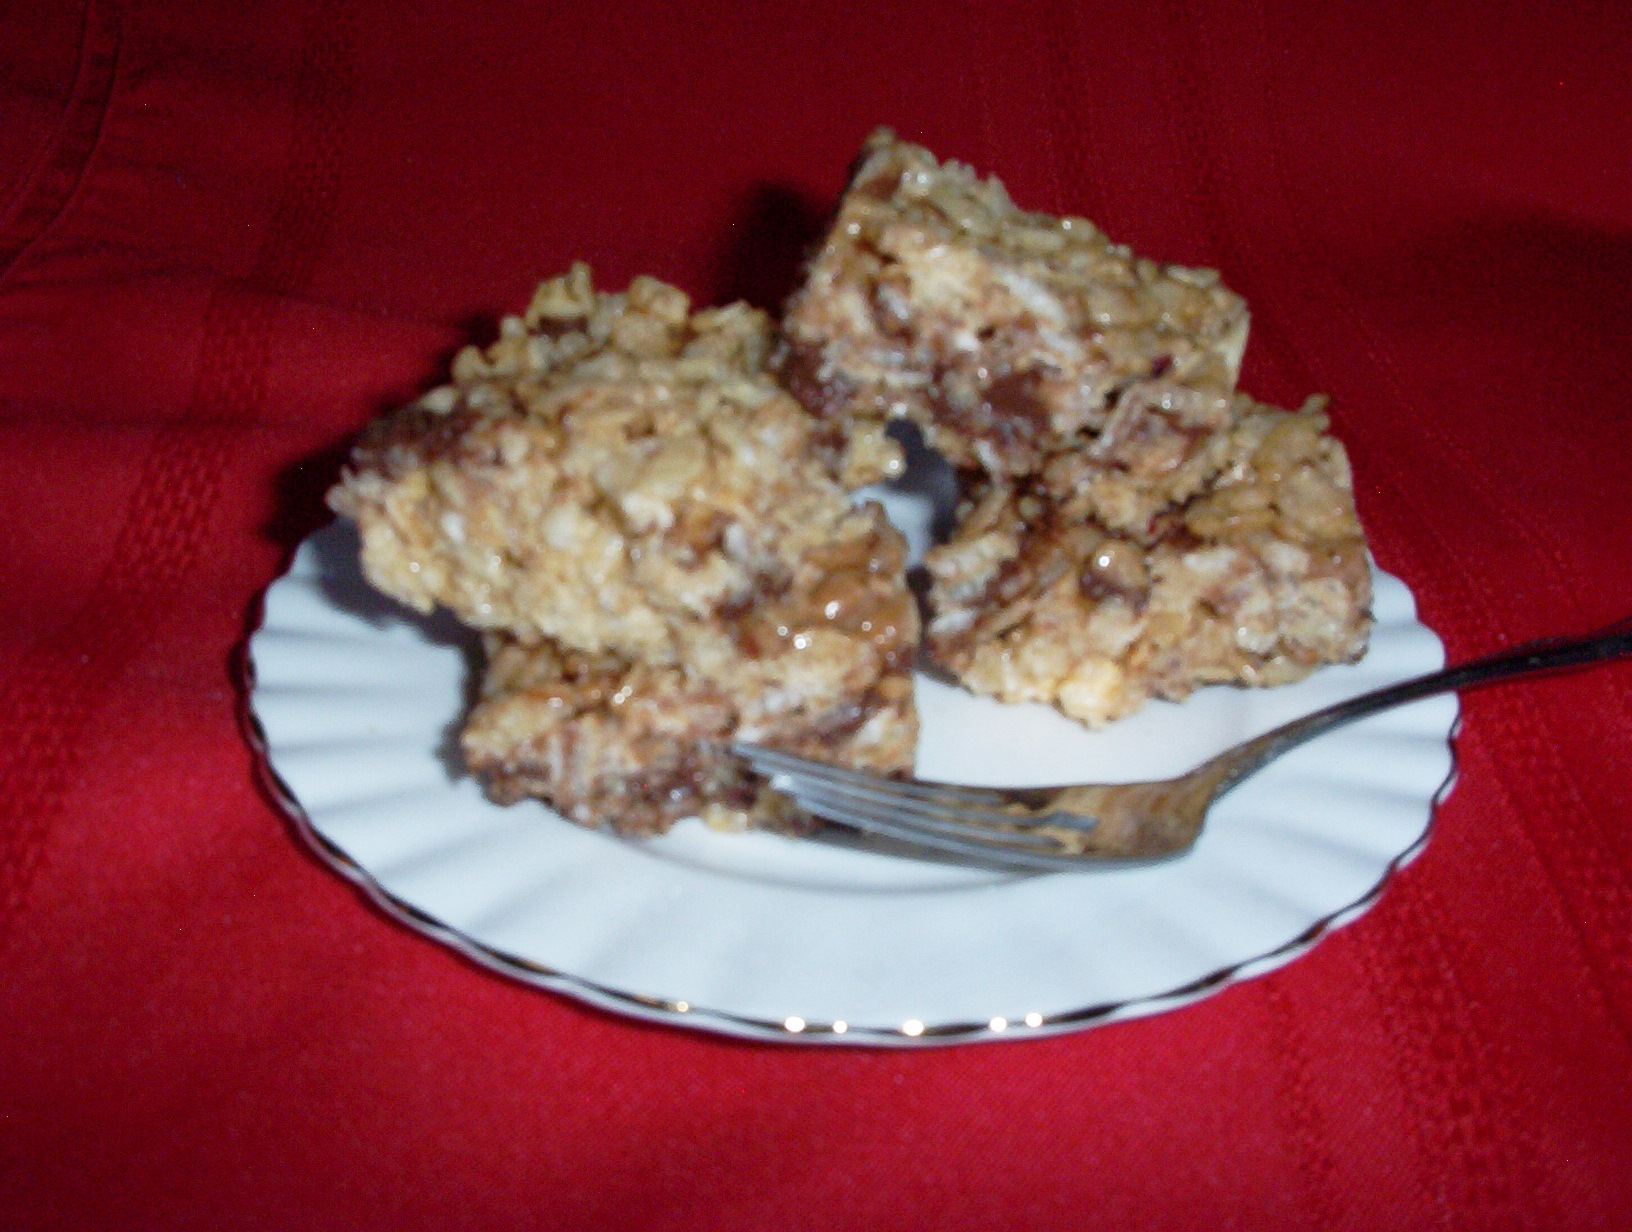 Gluten-Free Marshmallow Crispy Treats Dressed Up a Little - Also Casein-Free